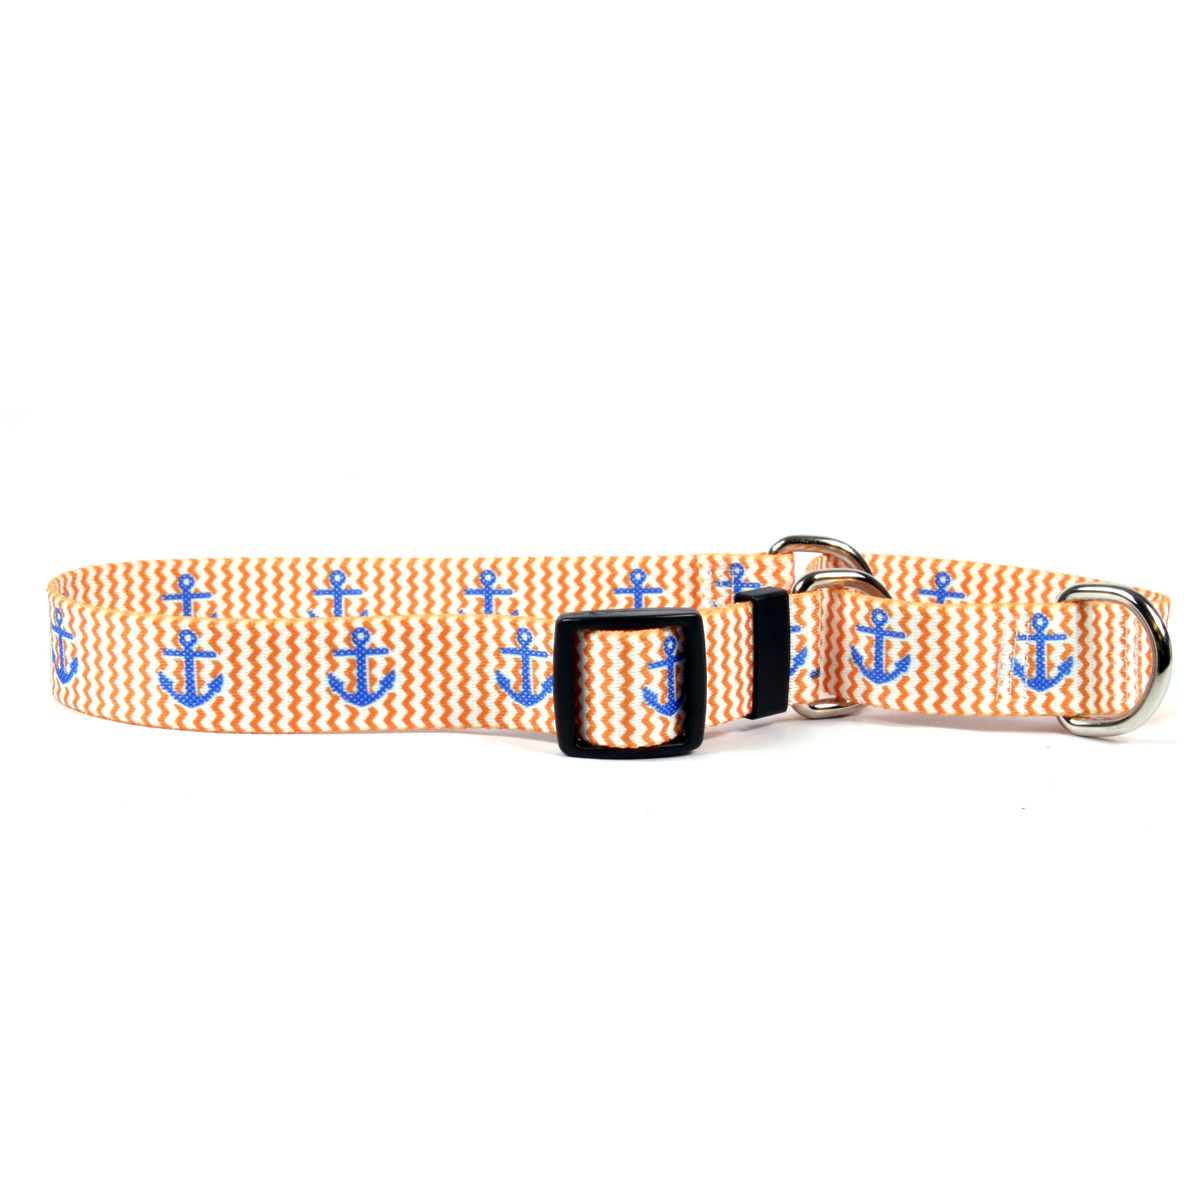 Anchors Away Martingale Collar